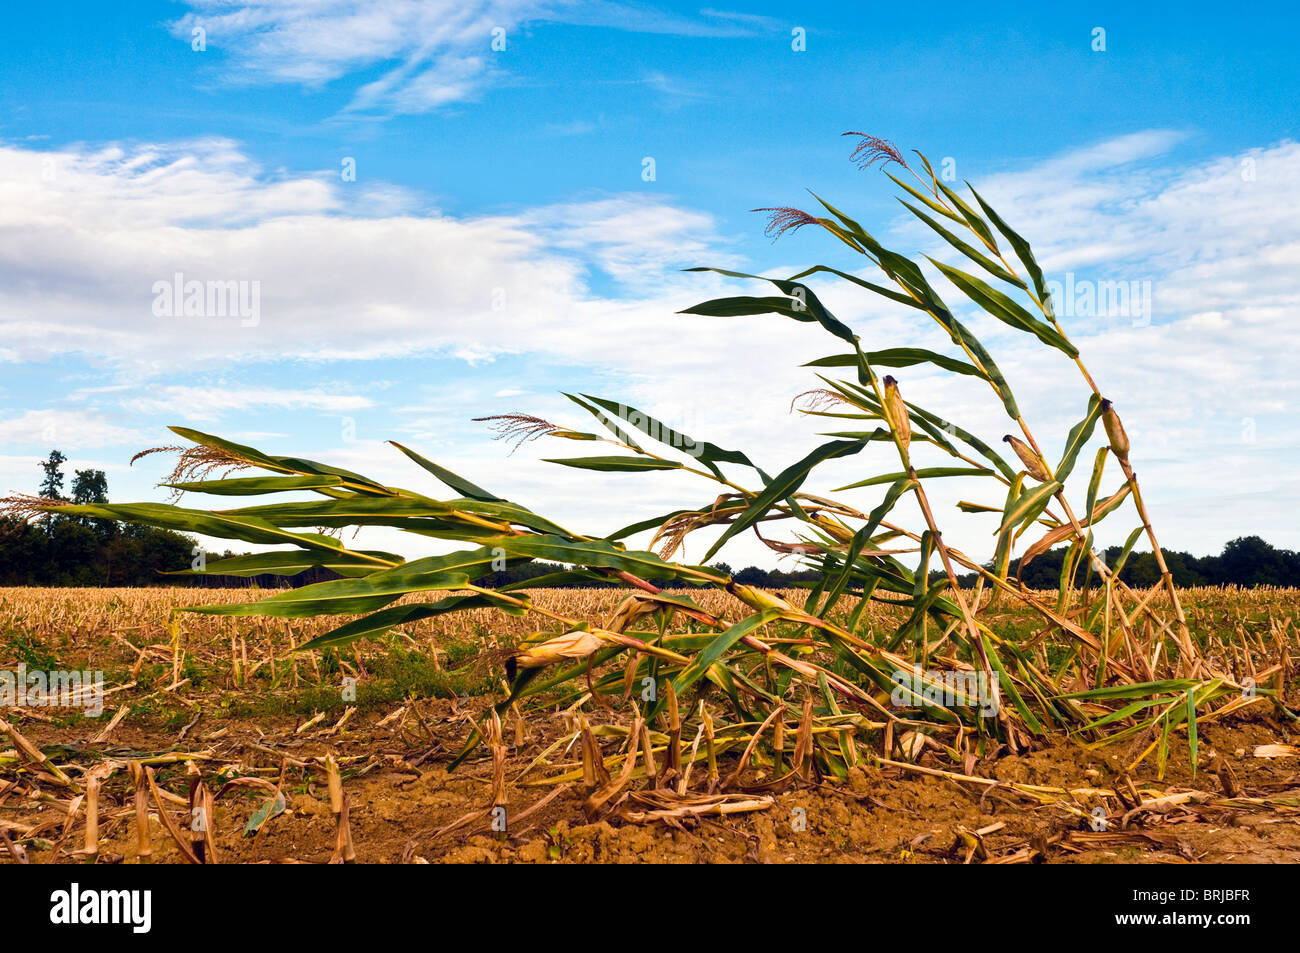 Solitary stems of maize / sweet corn after harvest - Indre-et-Loire, France. - Stock Image